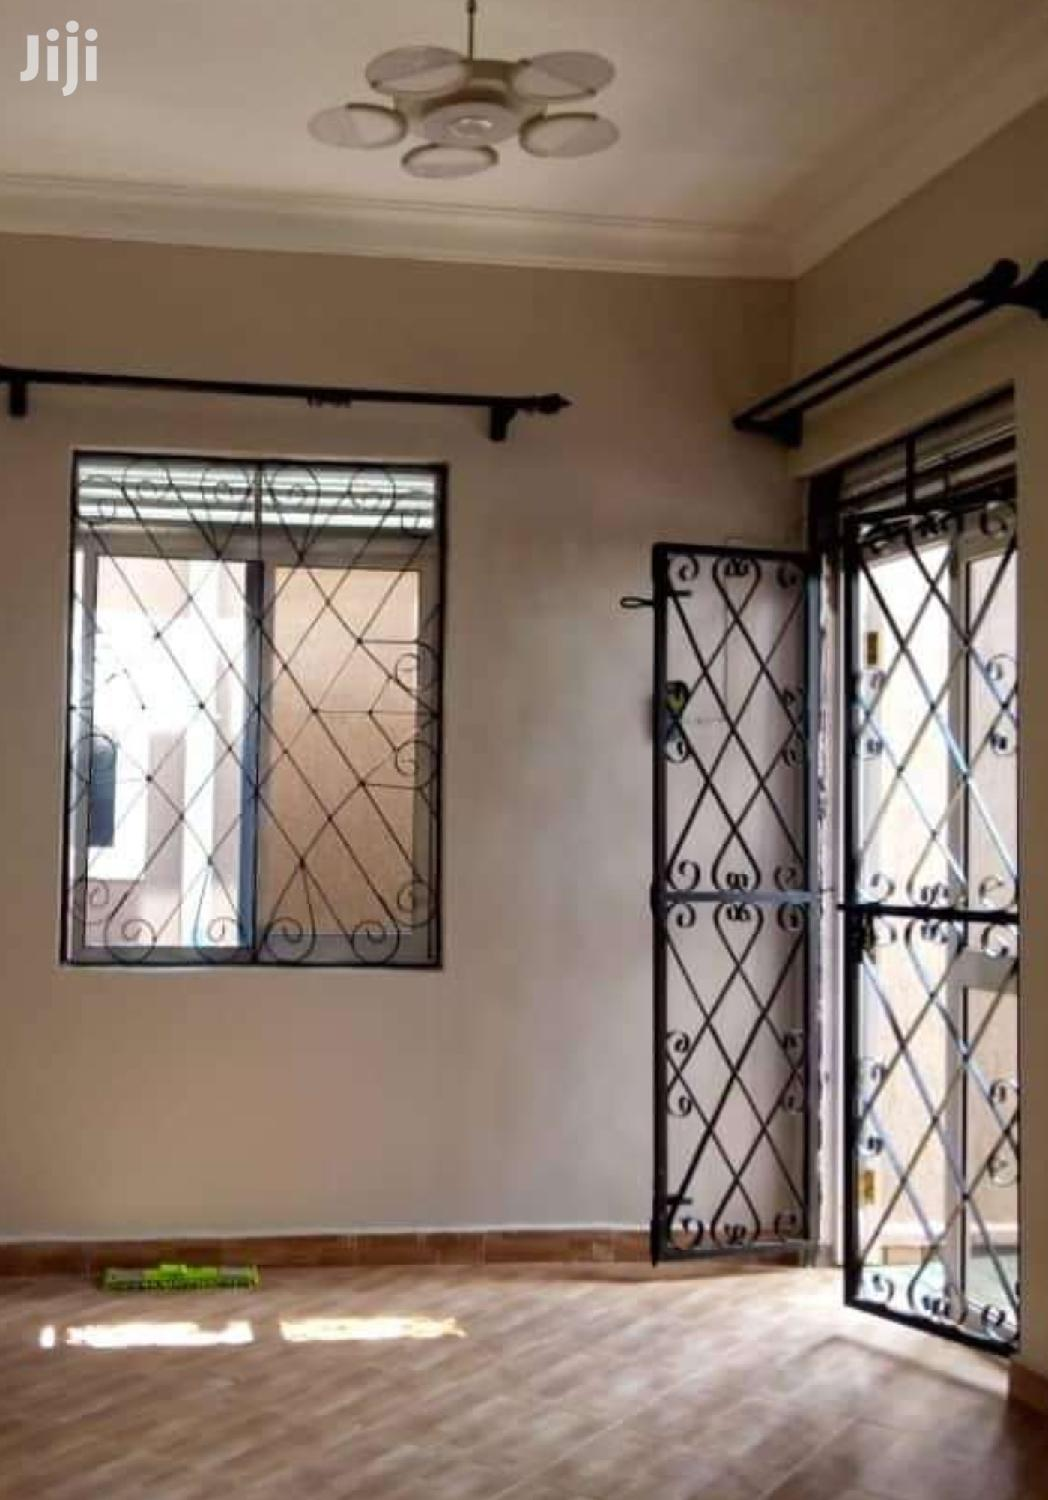 Ntinda Kiwatule 3 Bedrooms Apartment For Rent | Houses & Apartments For Rent for sale in Kampala, Central Region, Uganda